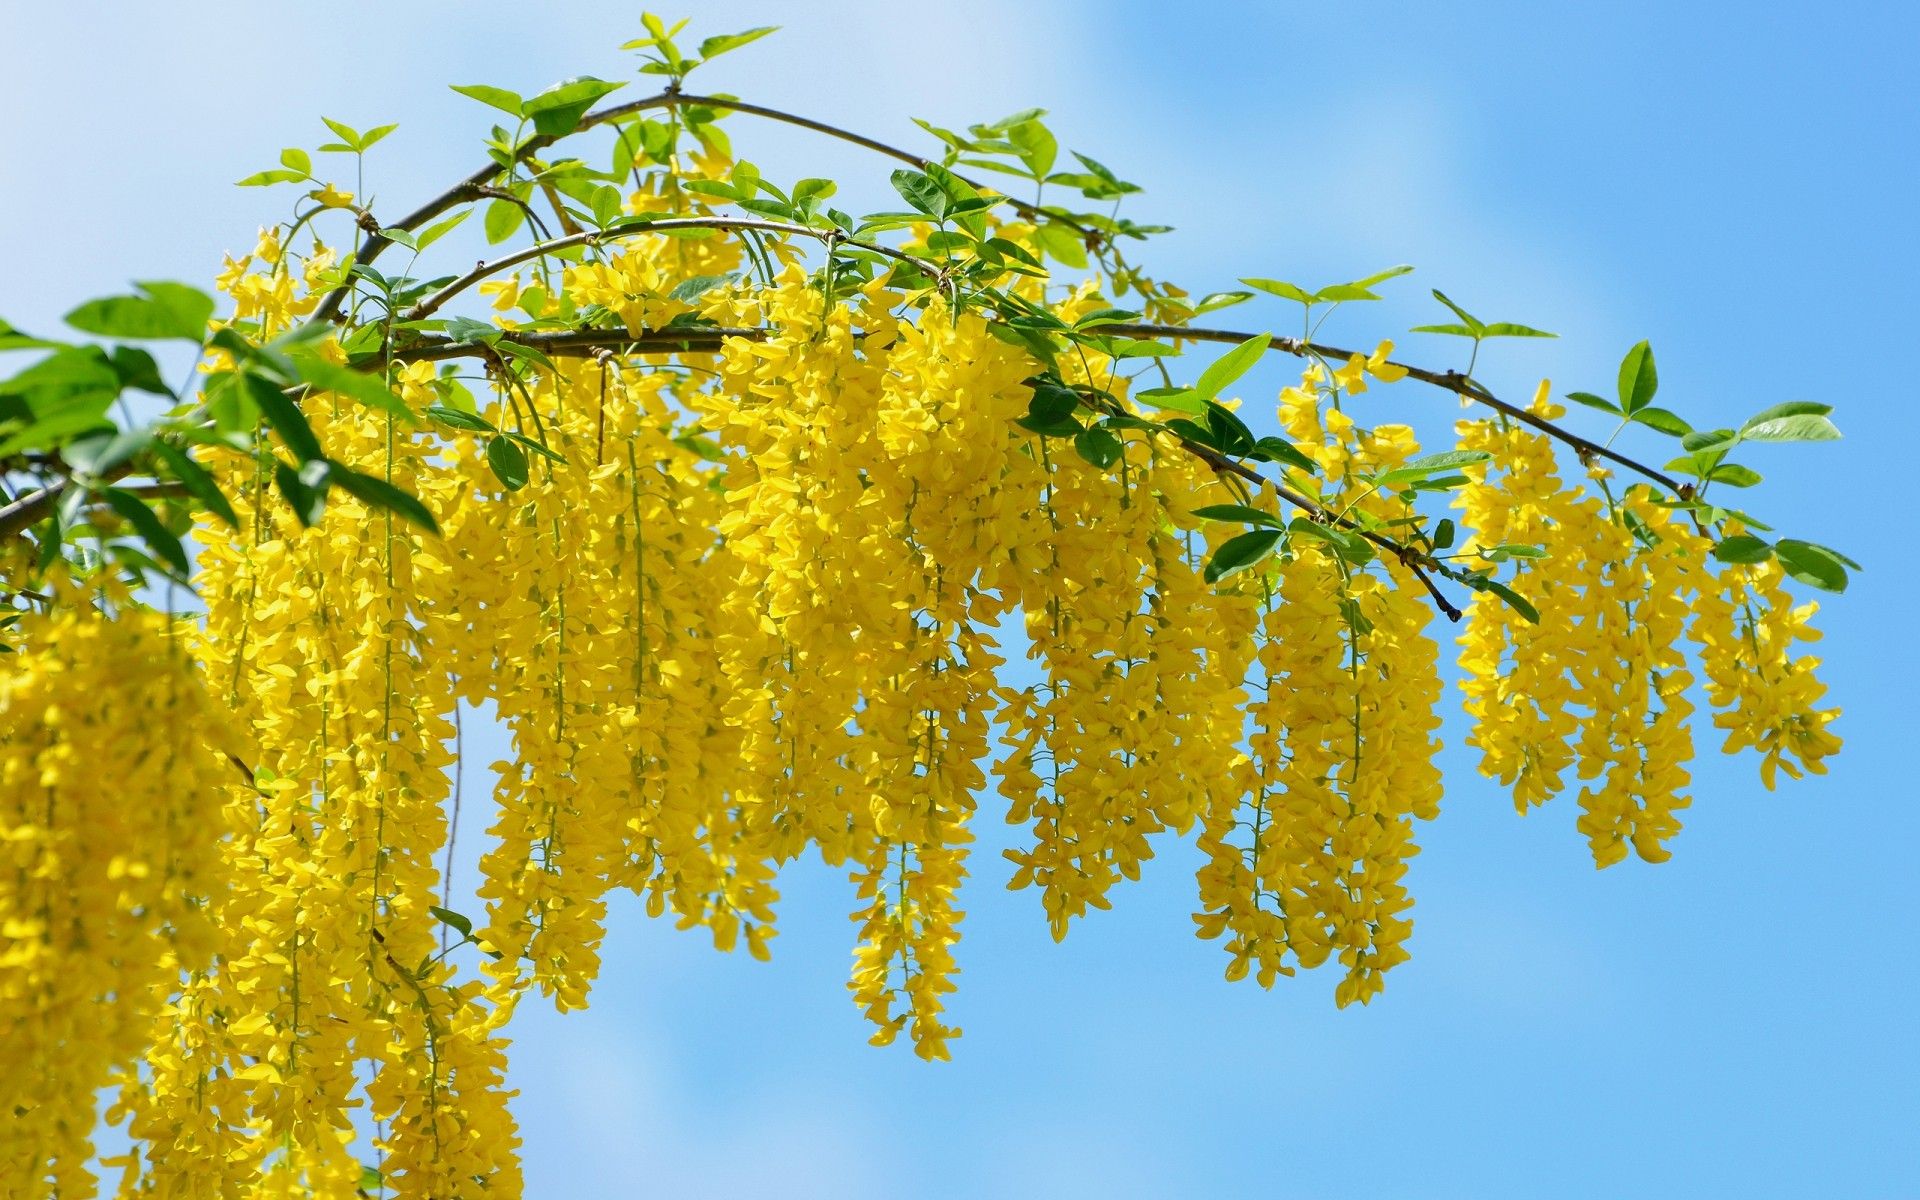 flowers leaf nature tree flora season bright fair weather branch summer growth sun outdoors color wood flower environment acacia